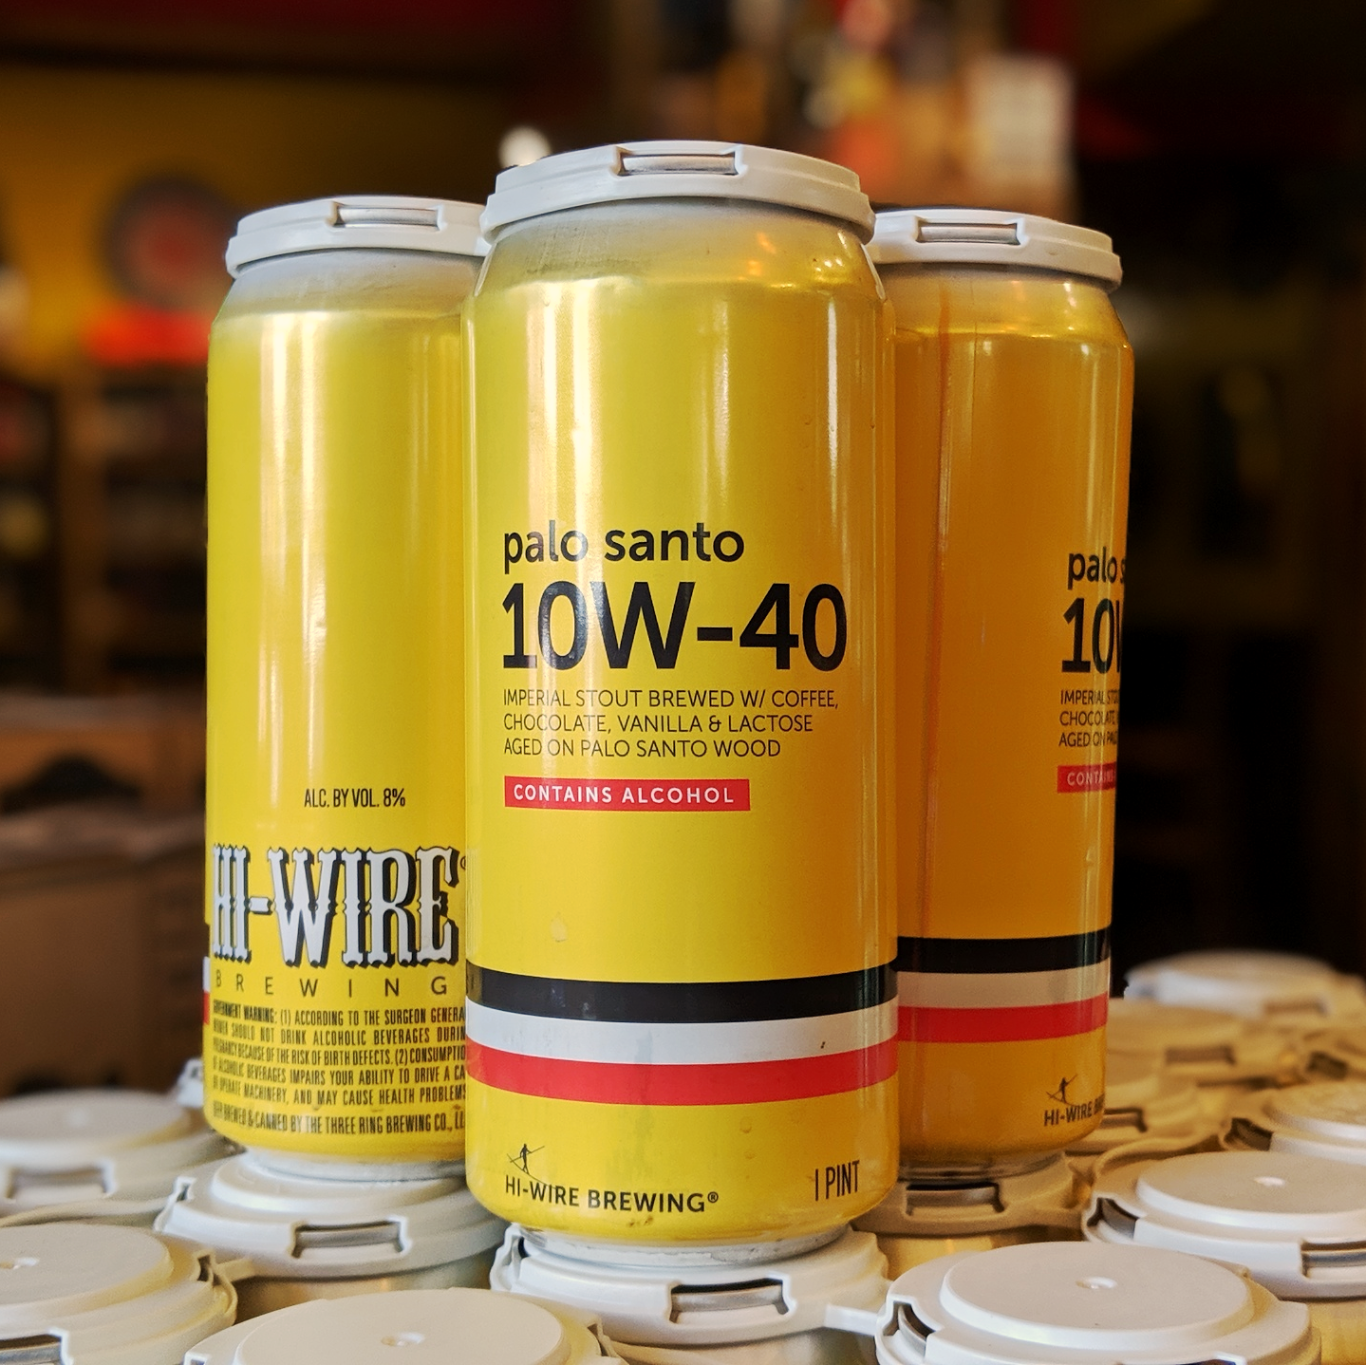 Hi-Wire Brewing 'Palo Santo 10W-40' Imperial Stout 16oz Can